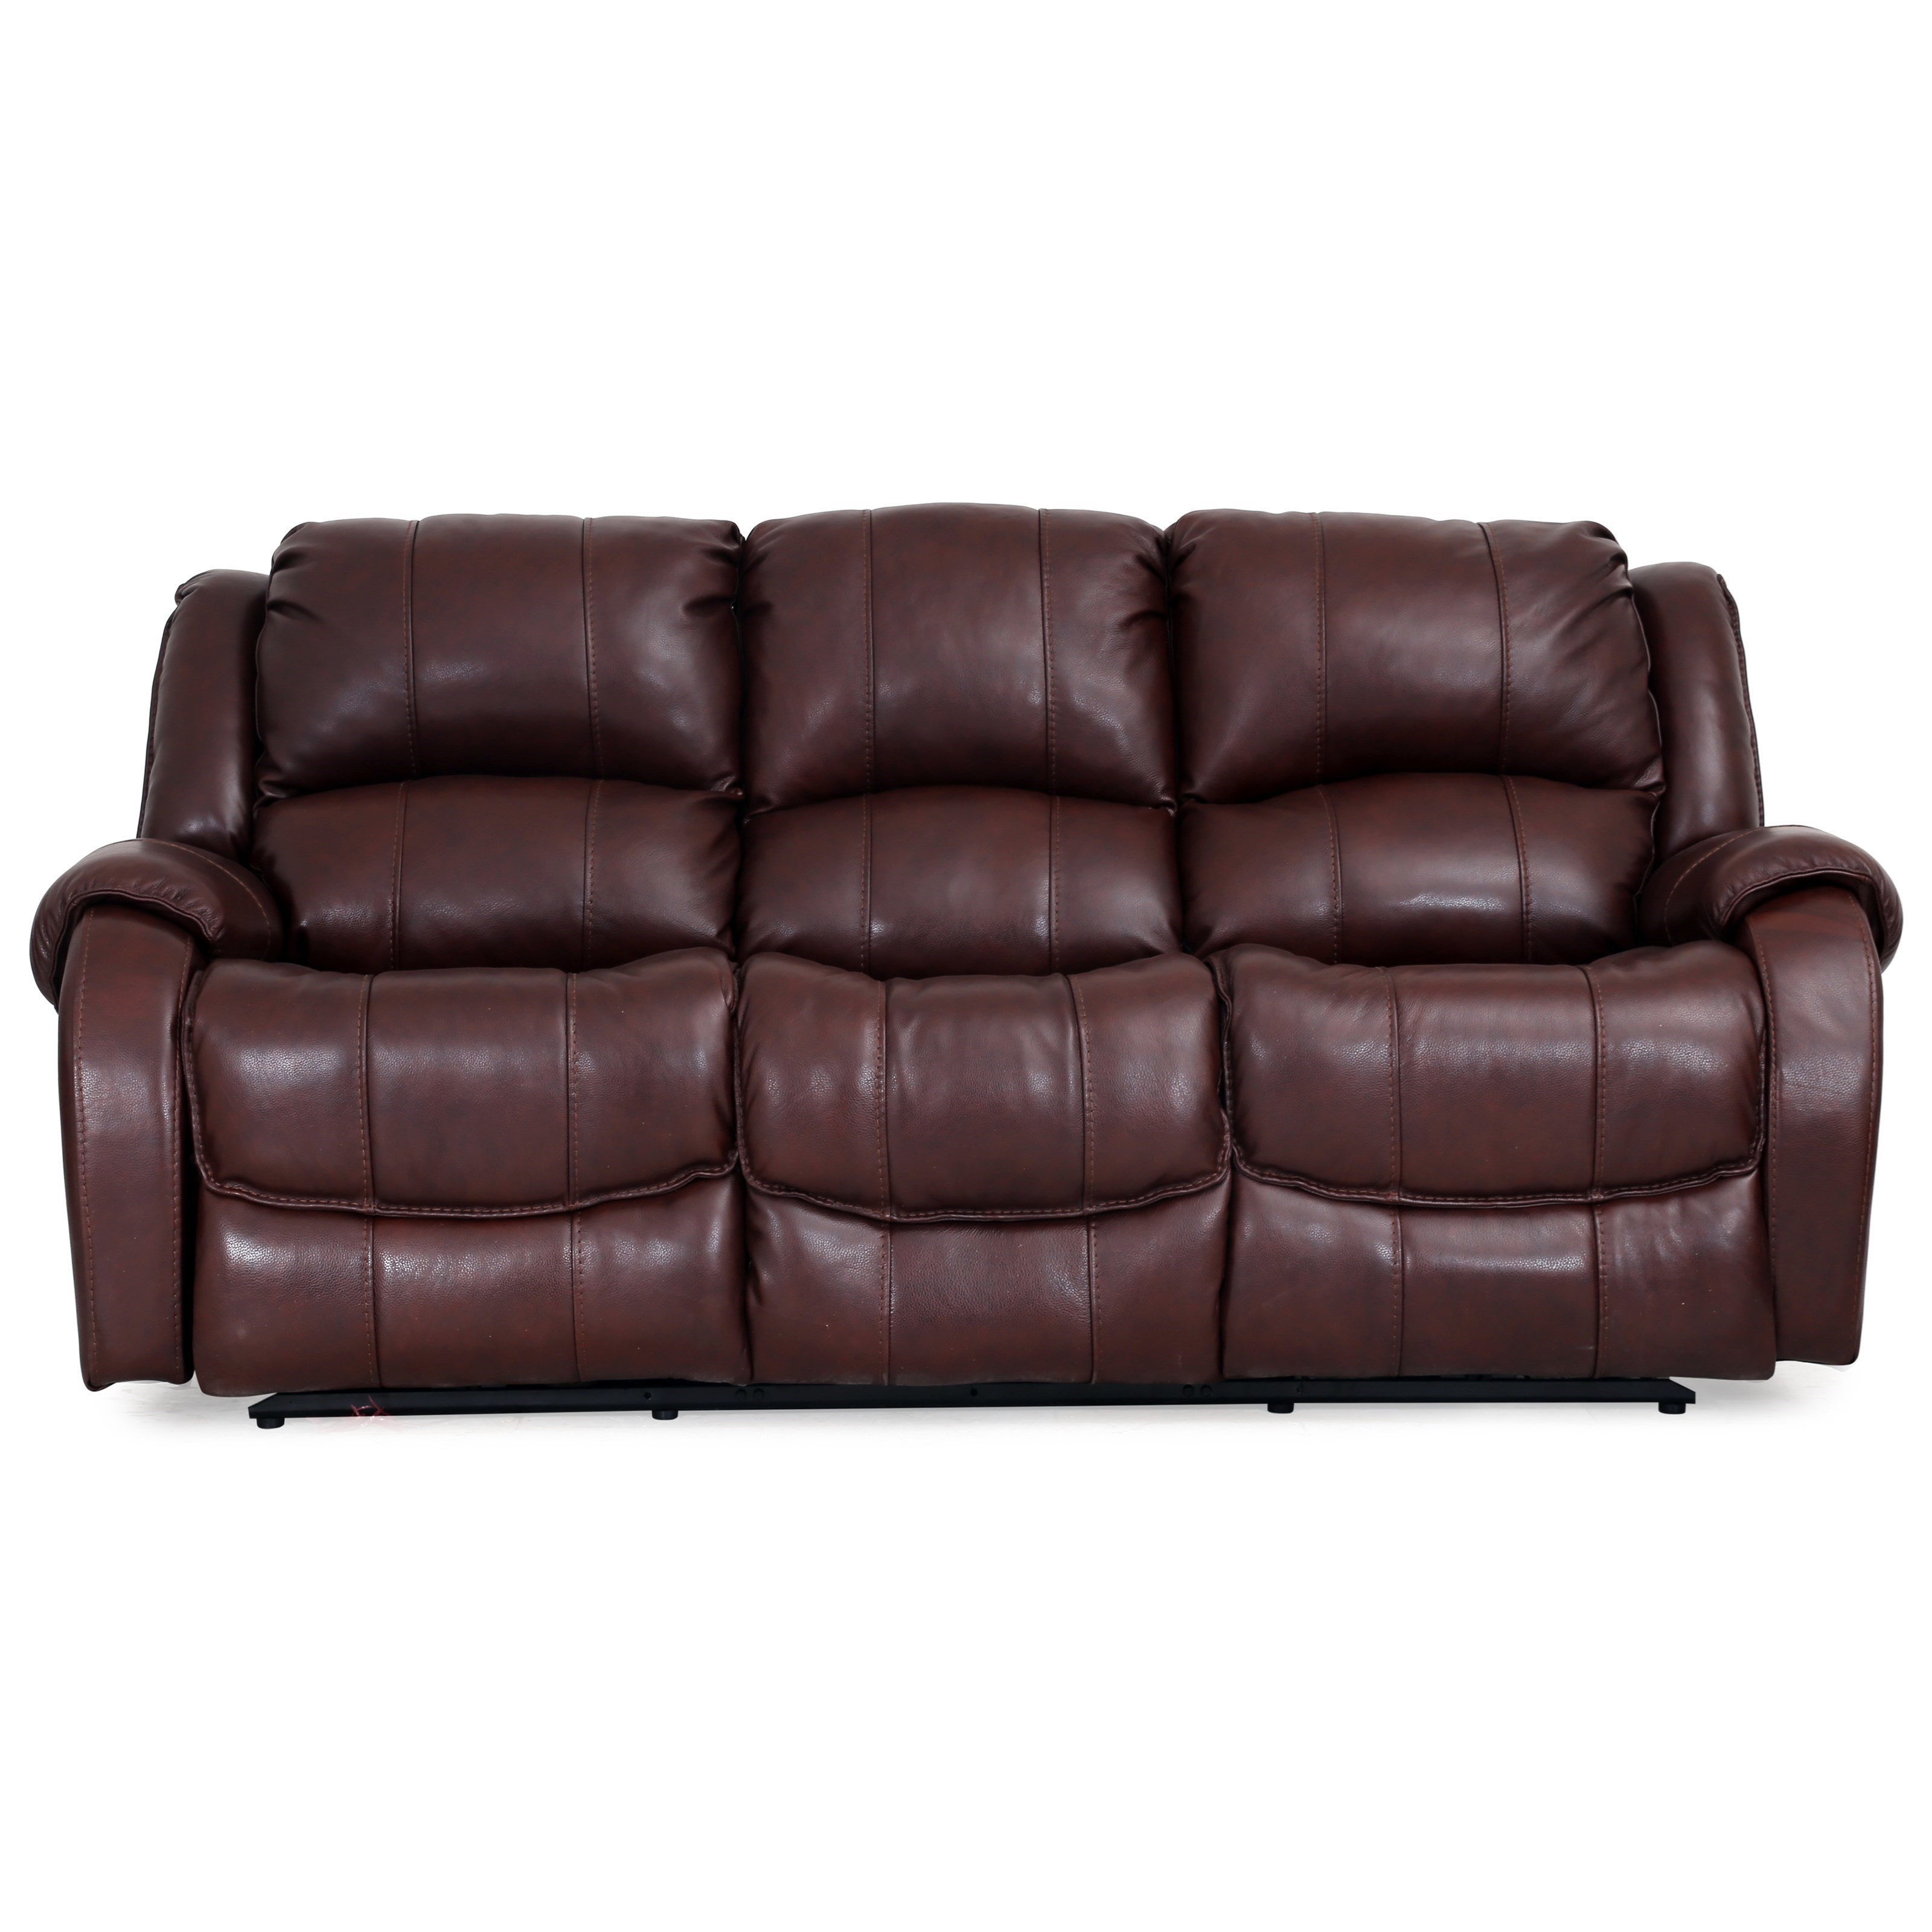 Cheers Sofa 5171 Power Reclining Sofa With Power Headrest